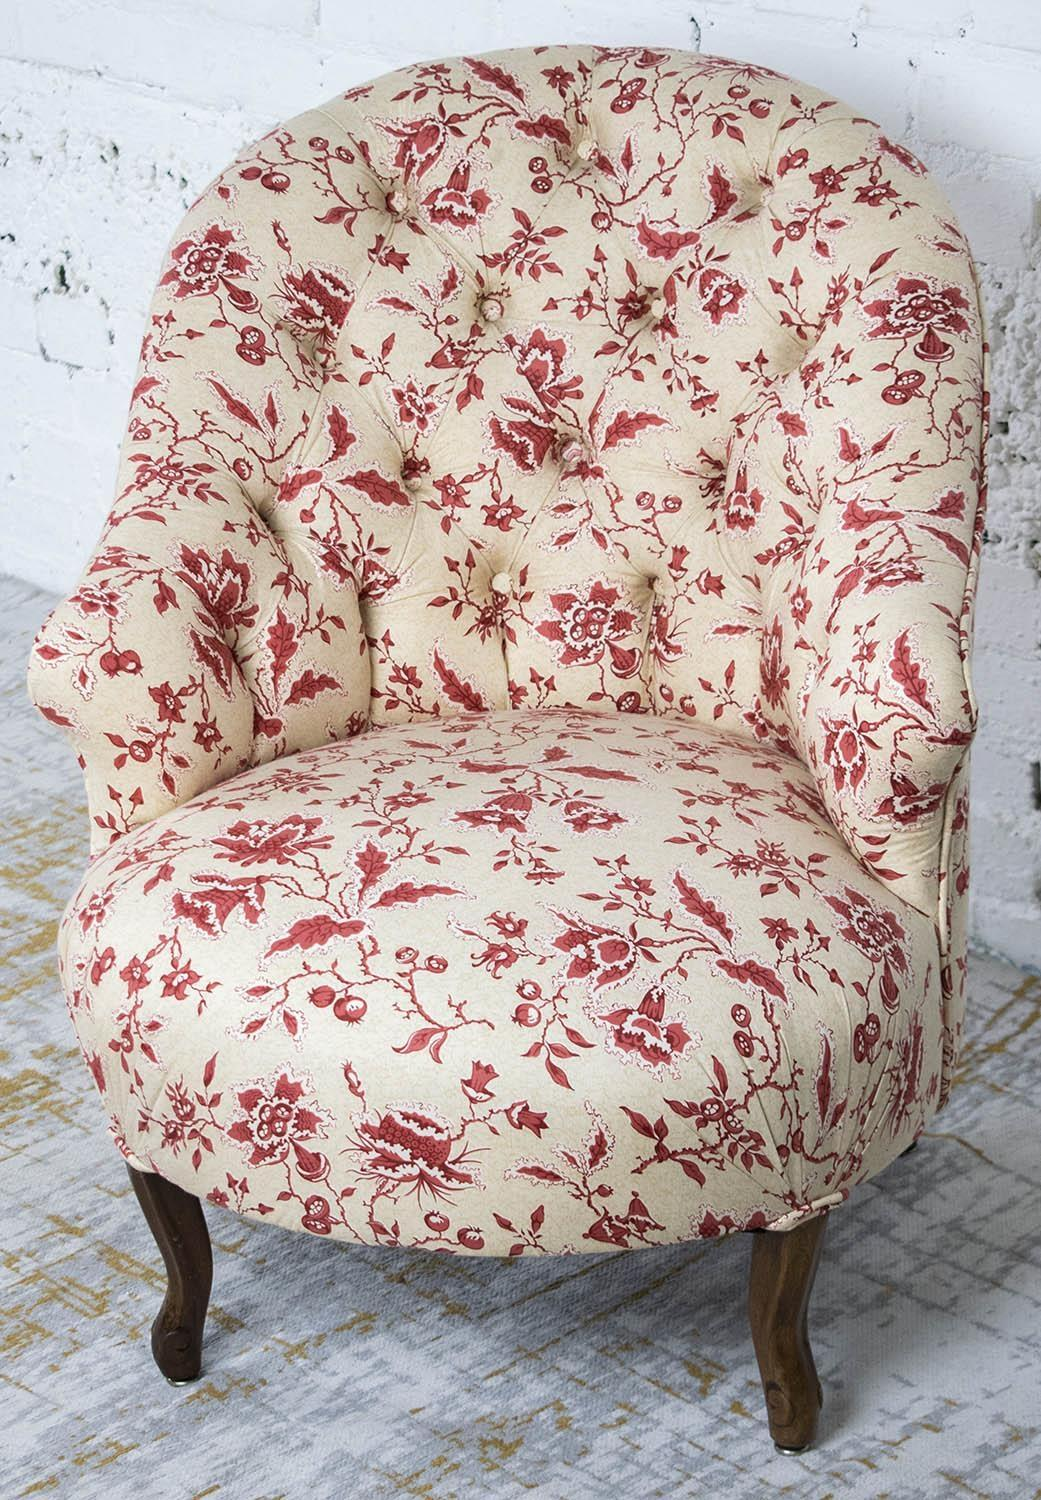 BERGERE, Napoleon III mahogany in cream and red foliate patterned upholstery, 75cm H x 61cm x 73cm. - Image 3 of 3